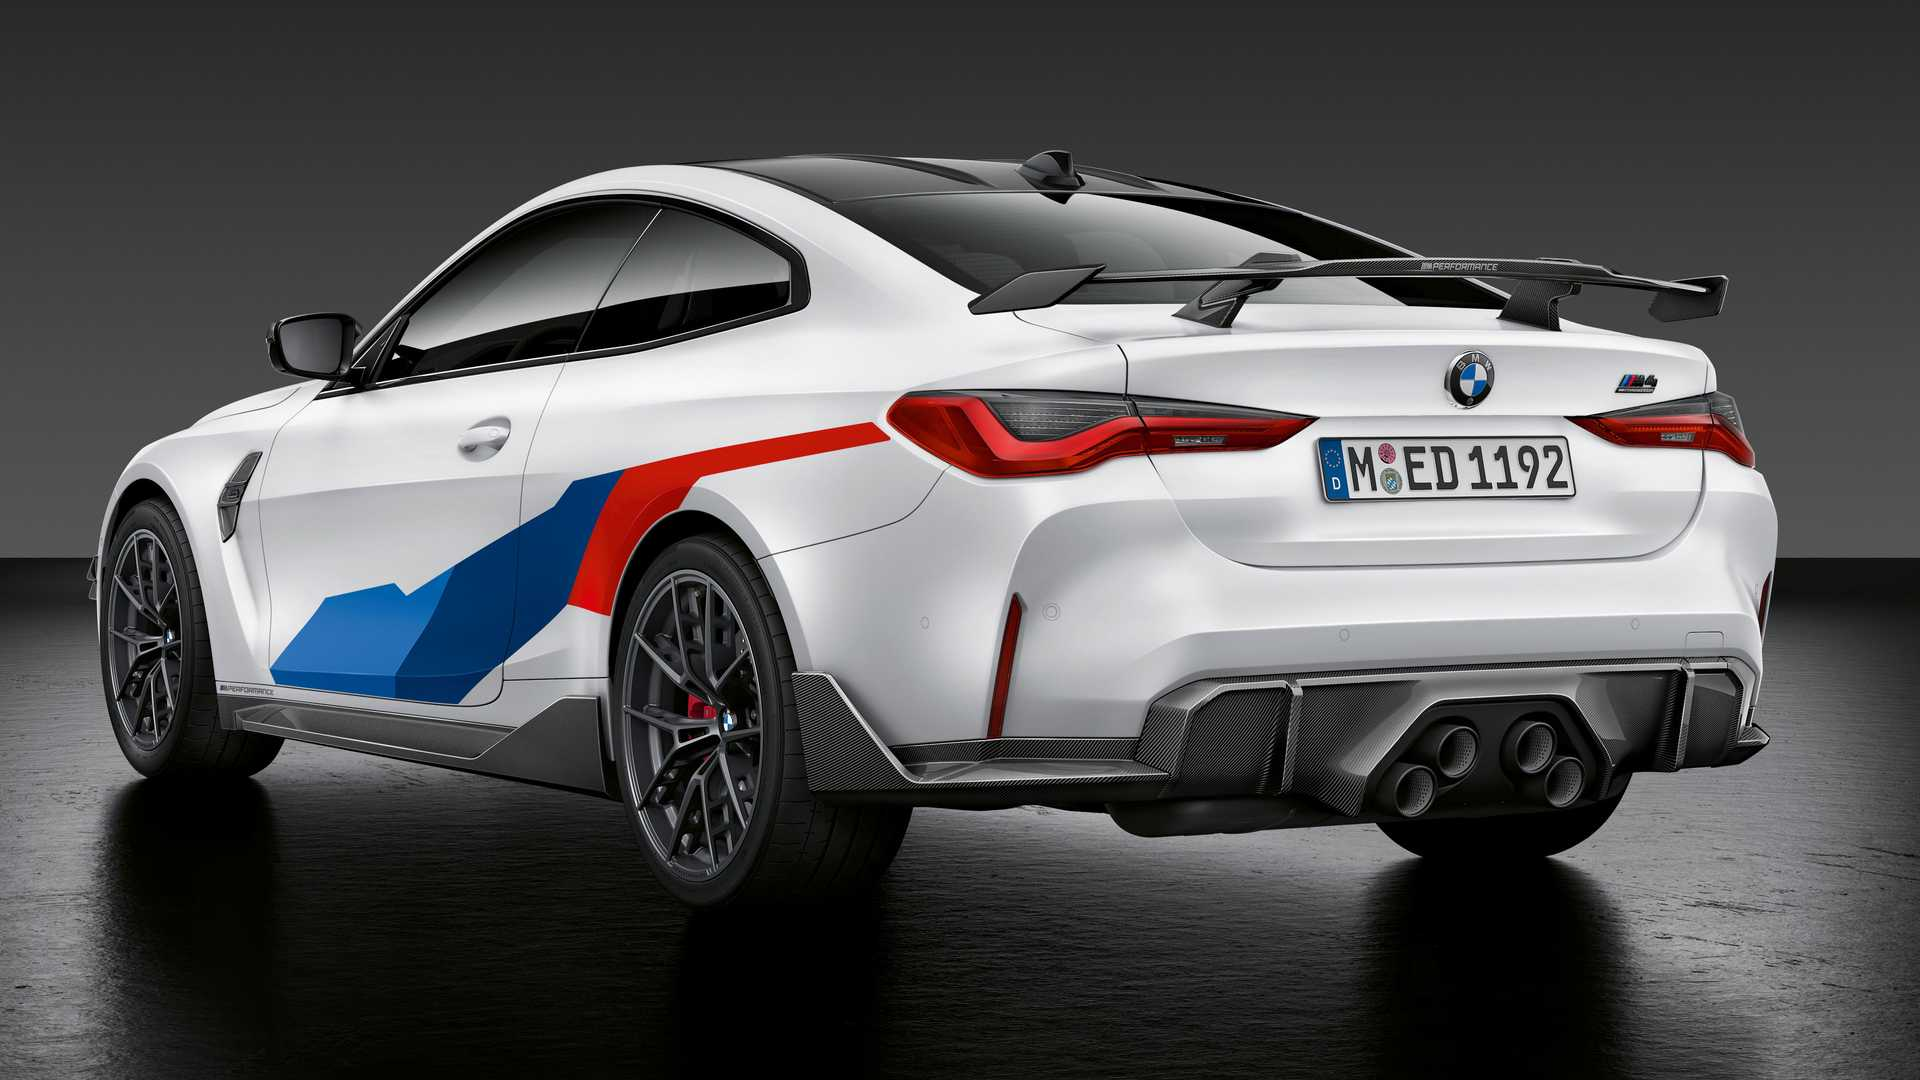 کوپه بی ام و ام 4 /  BMW M4 Coupe سفید رنگ